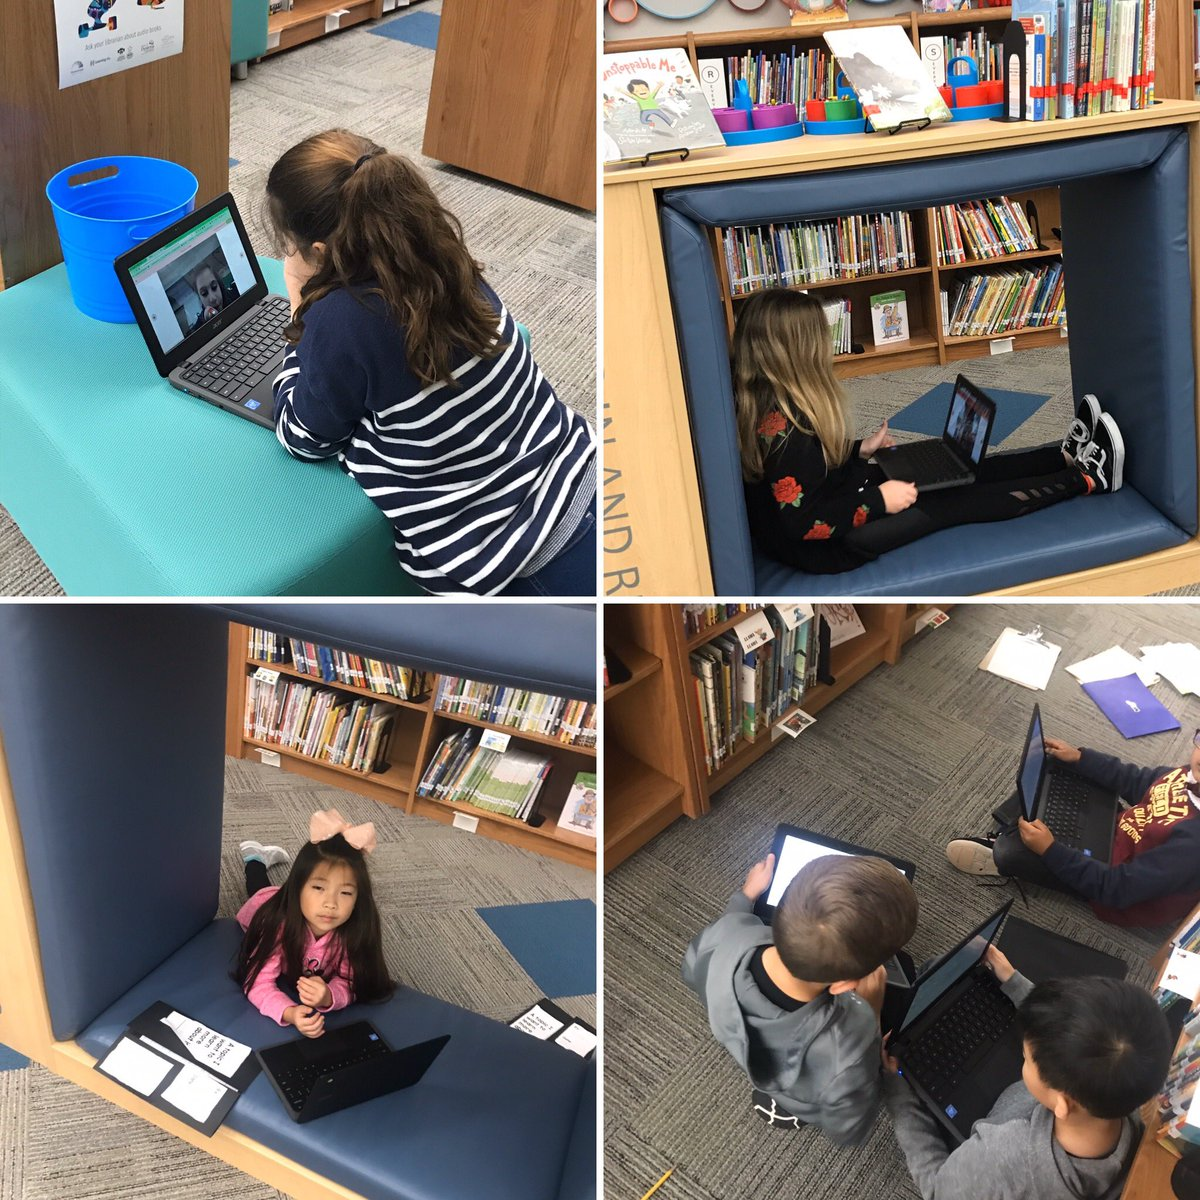 I love how our @Spradley_El 1st and 4th graders are using the library as a flexible space to work. #PISDLibrary